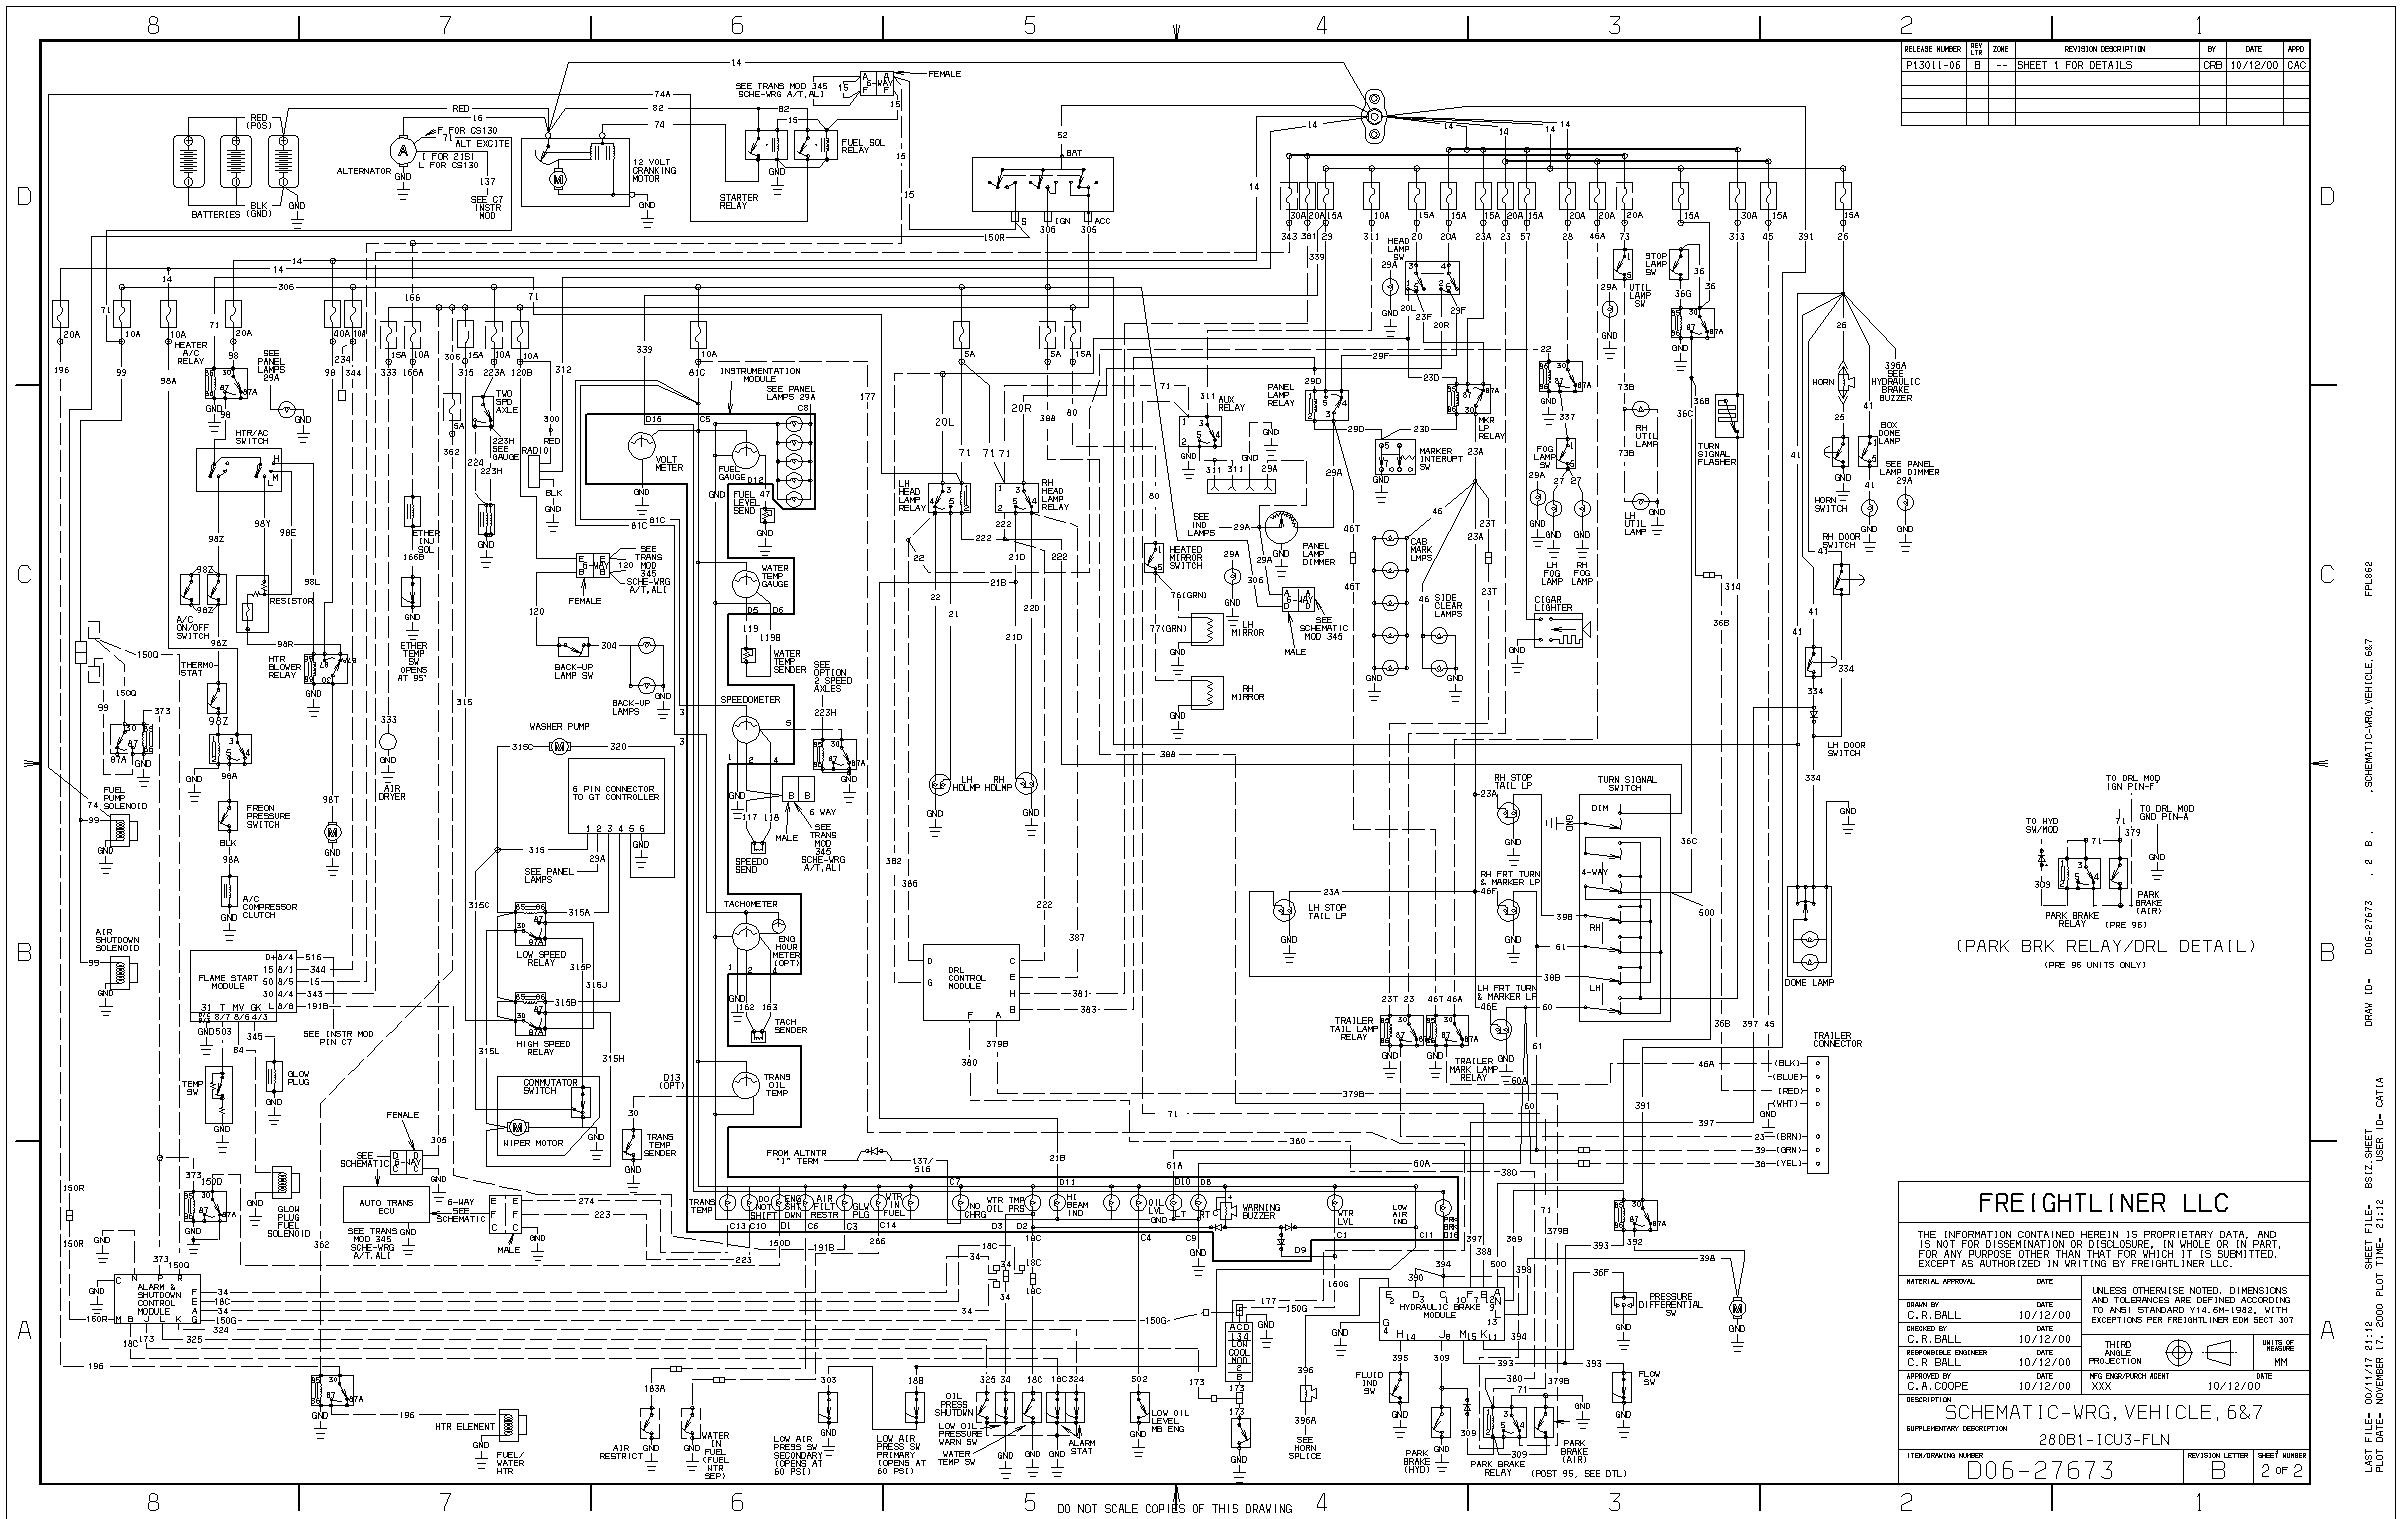 2001 Camry Engine Diagram Wiring Diagram Sterling Truck Wiring Diagrams 2003 toyota Camry 2 4 Of 2001 Camry Engine Diagram